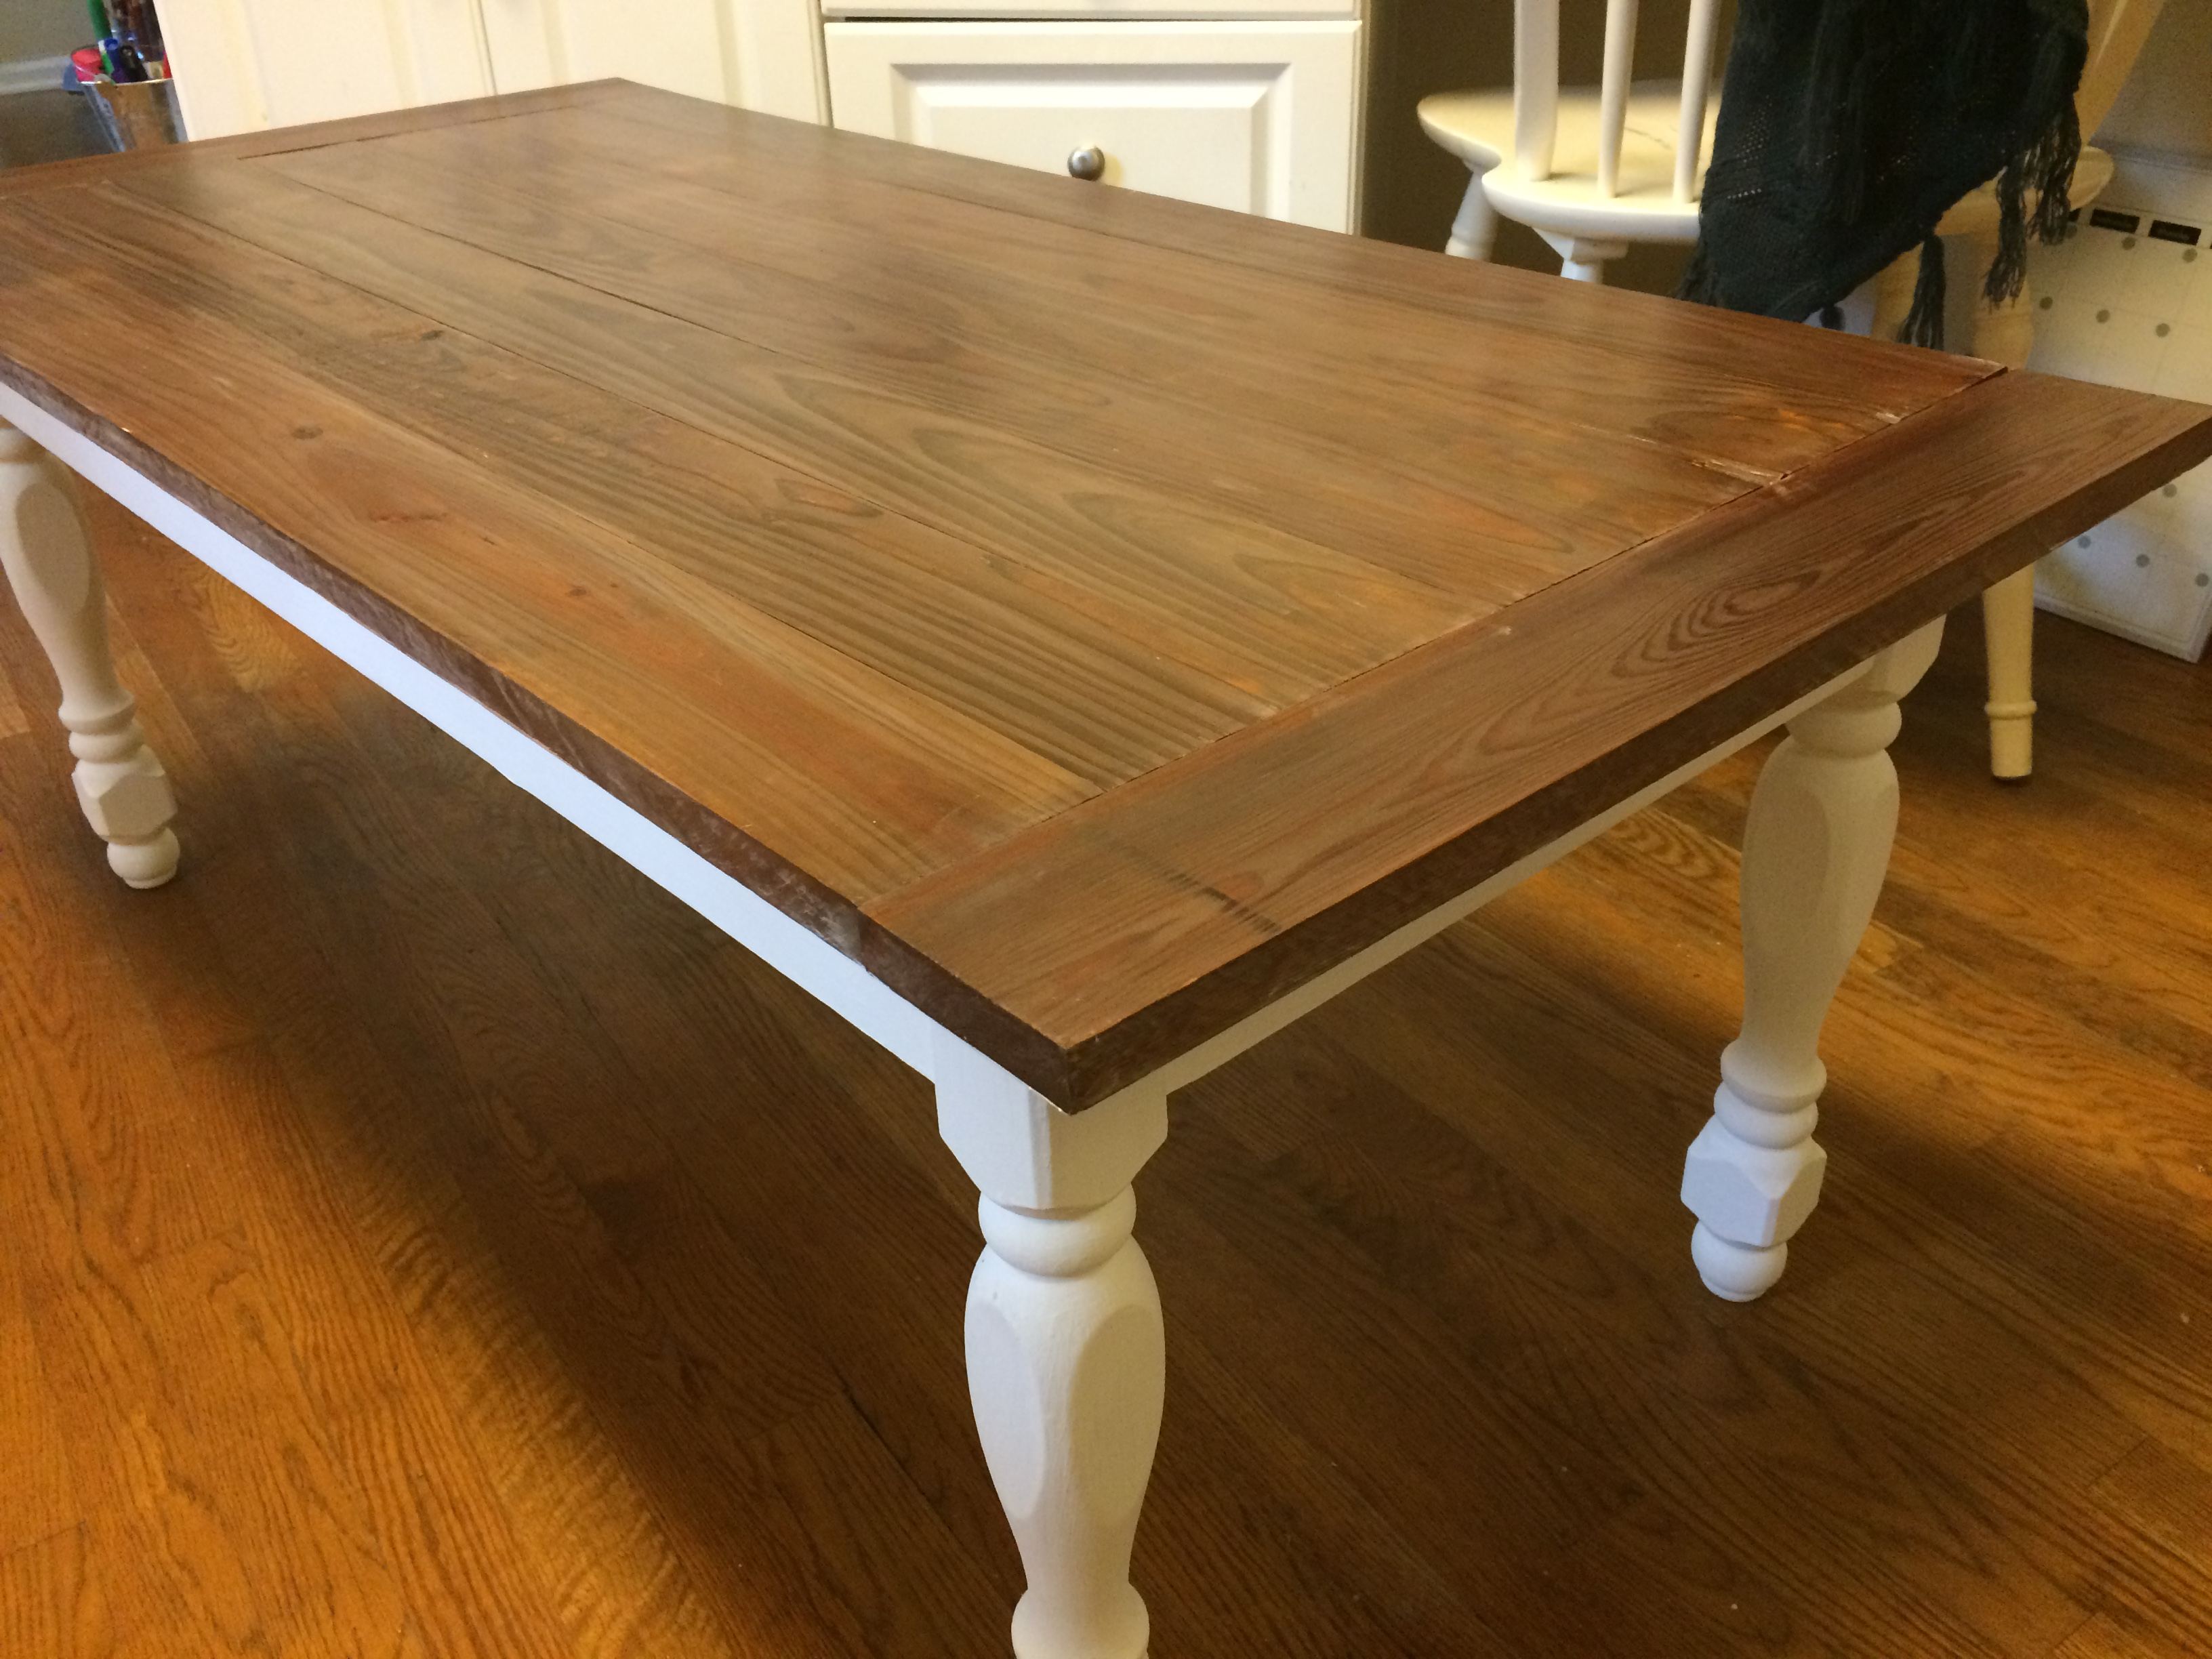 Ana White Reclaimed Turned Leg Coffee Table Diy Projects